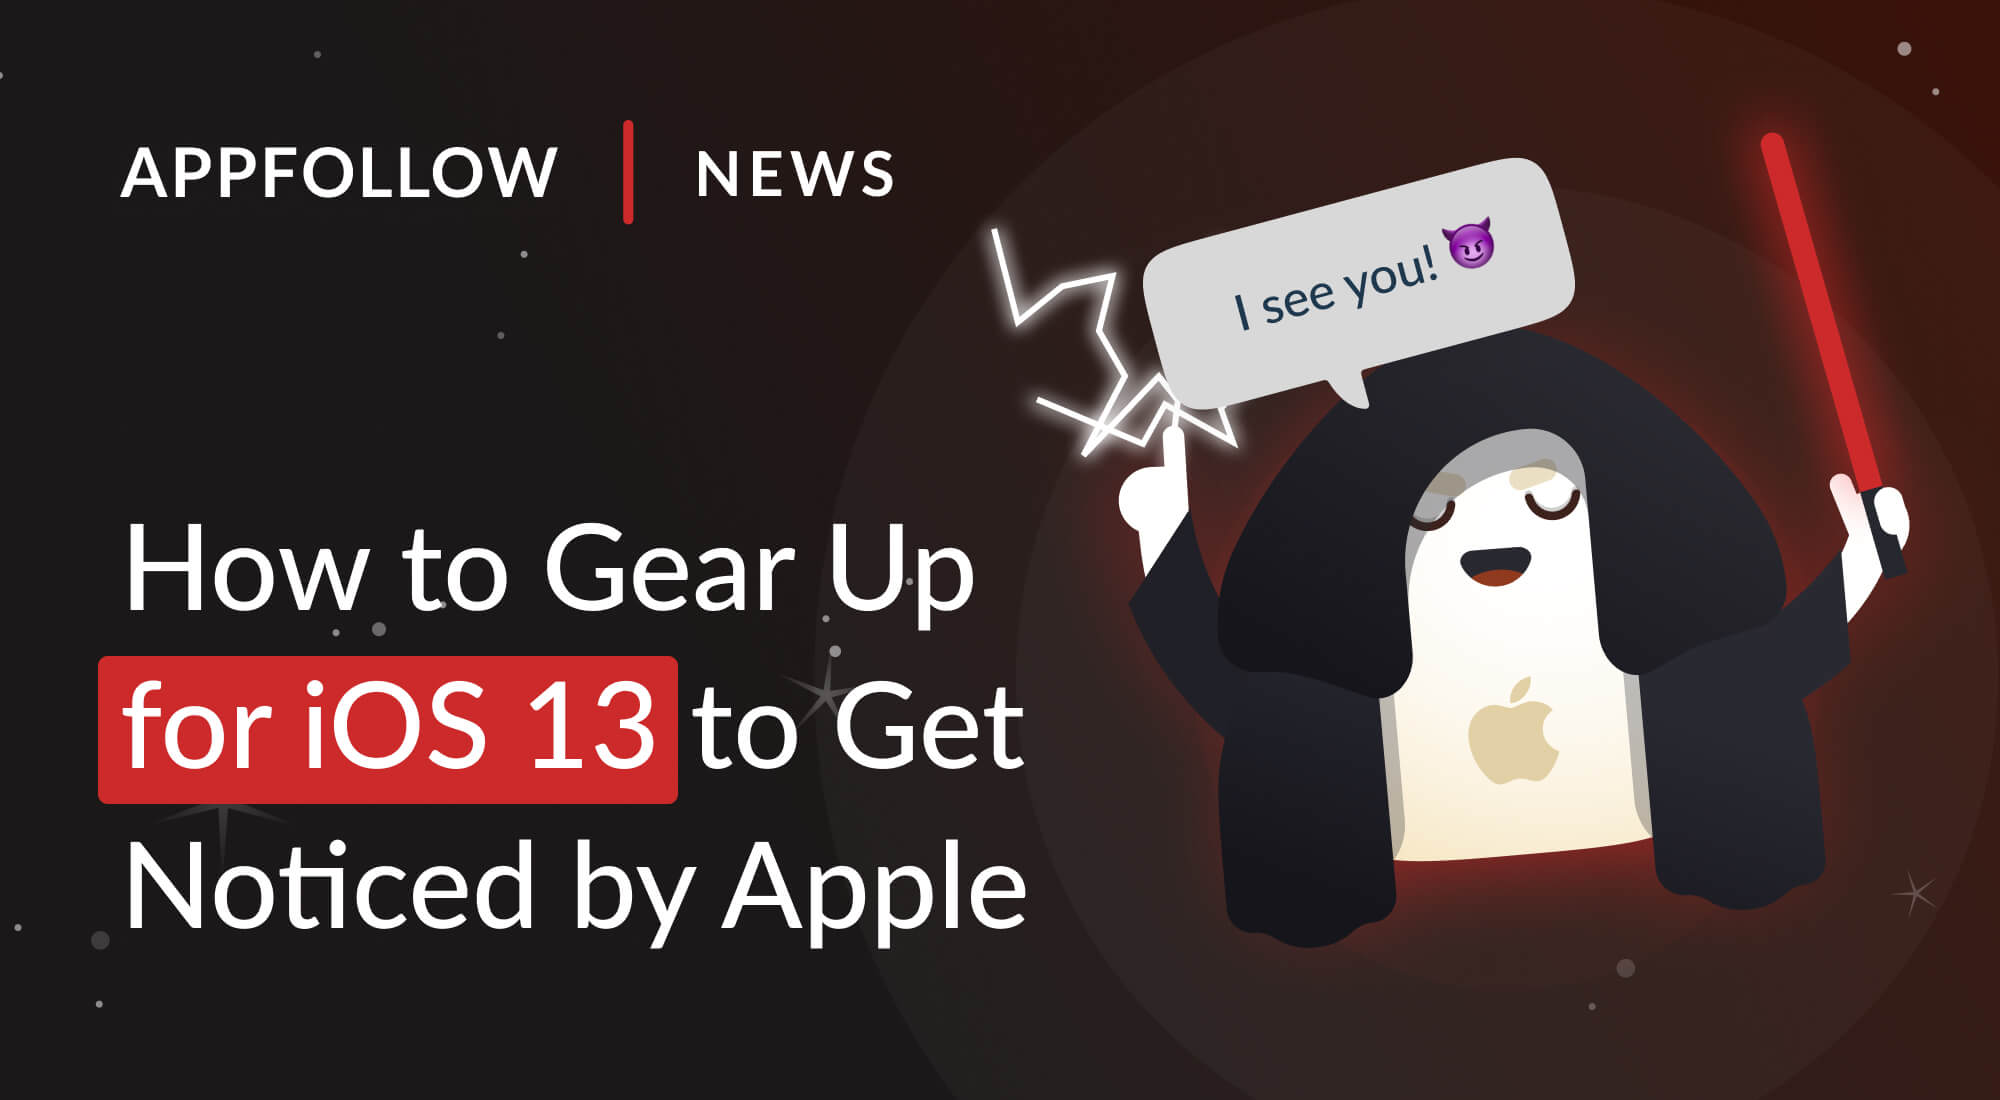 How to Gear Up for iOS 13 to Get Noticed by Apple